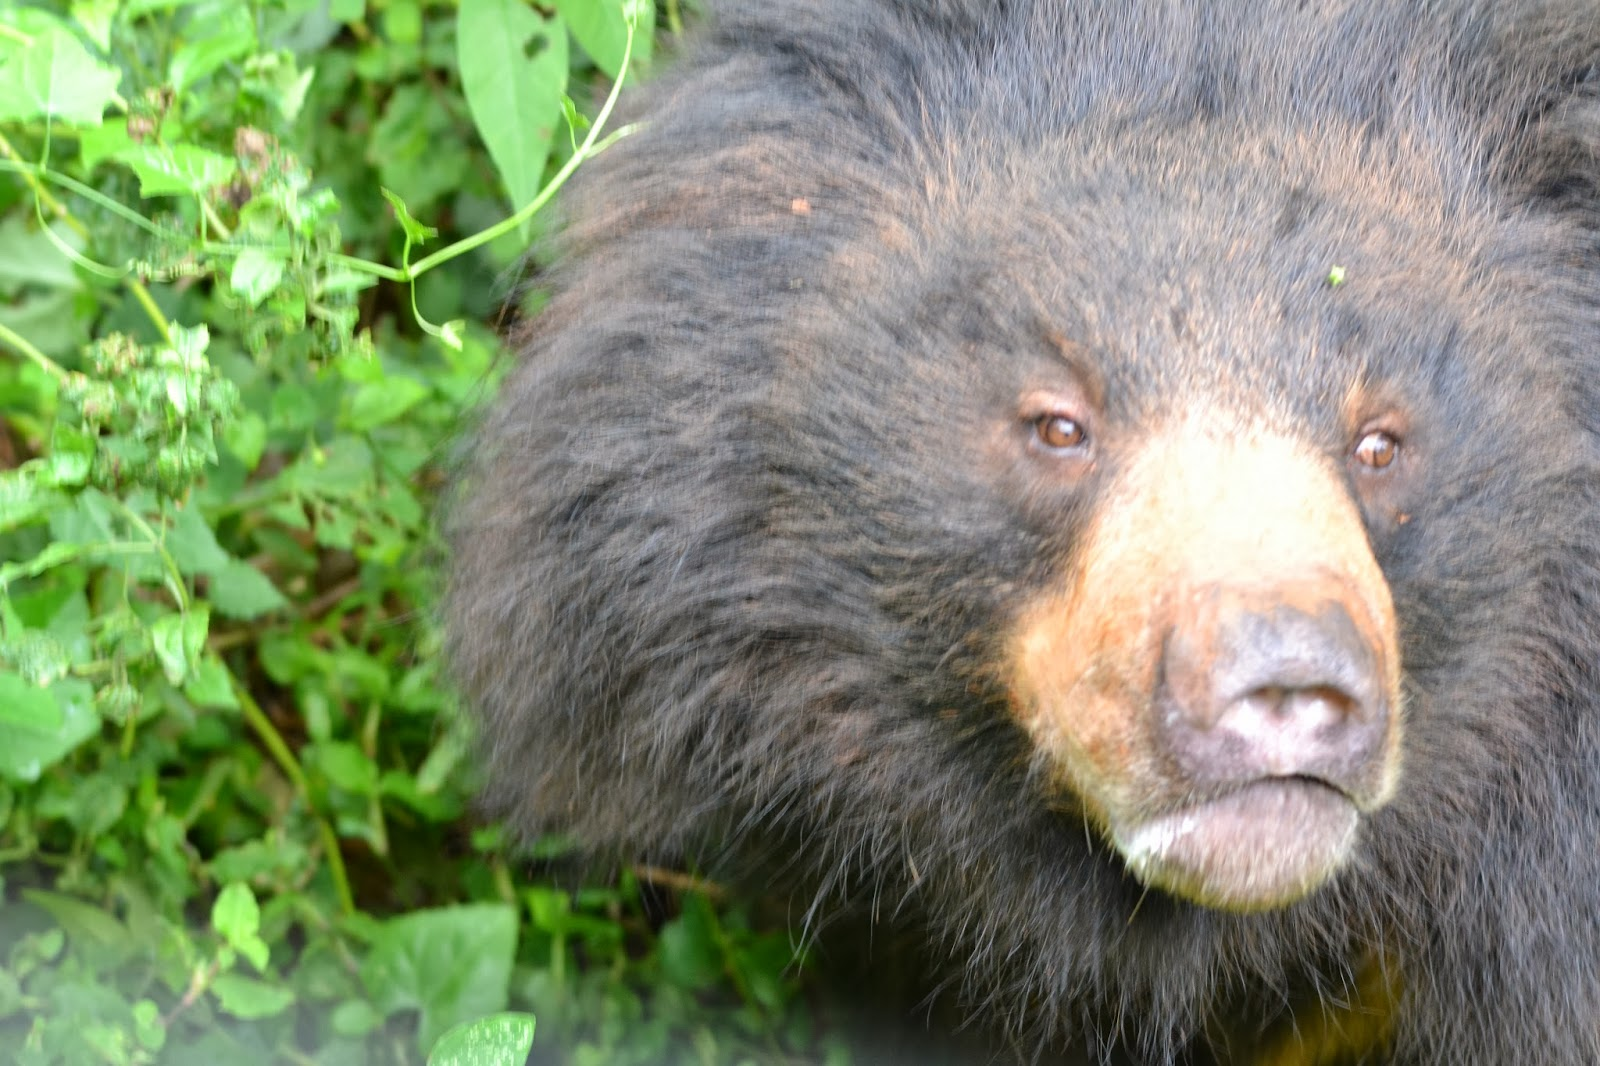 Bear at nandankanan zoological park